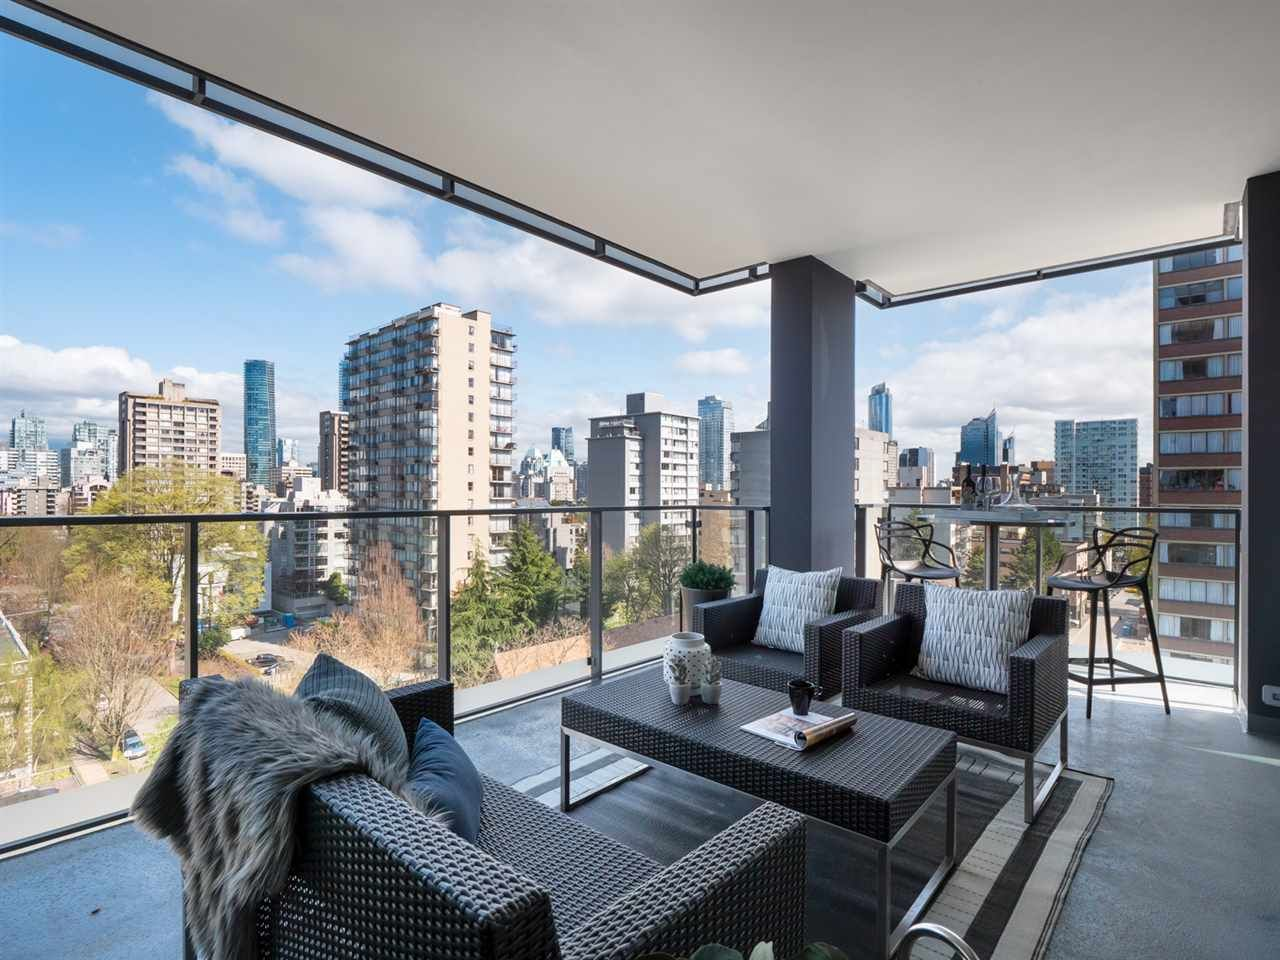 Main Photo: 1001 1171 JERVIS STREET in Vancouver: West End VW Condo for sale (Vancouver West)  : MLS®# R2383389